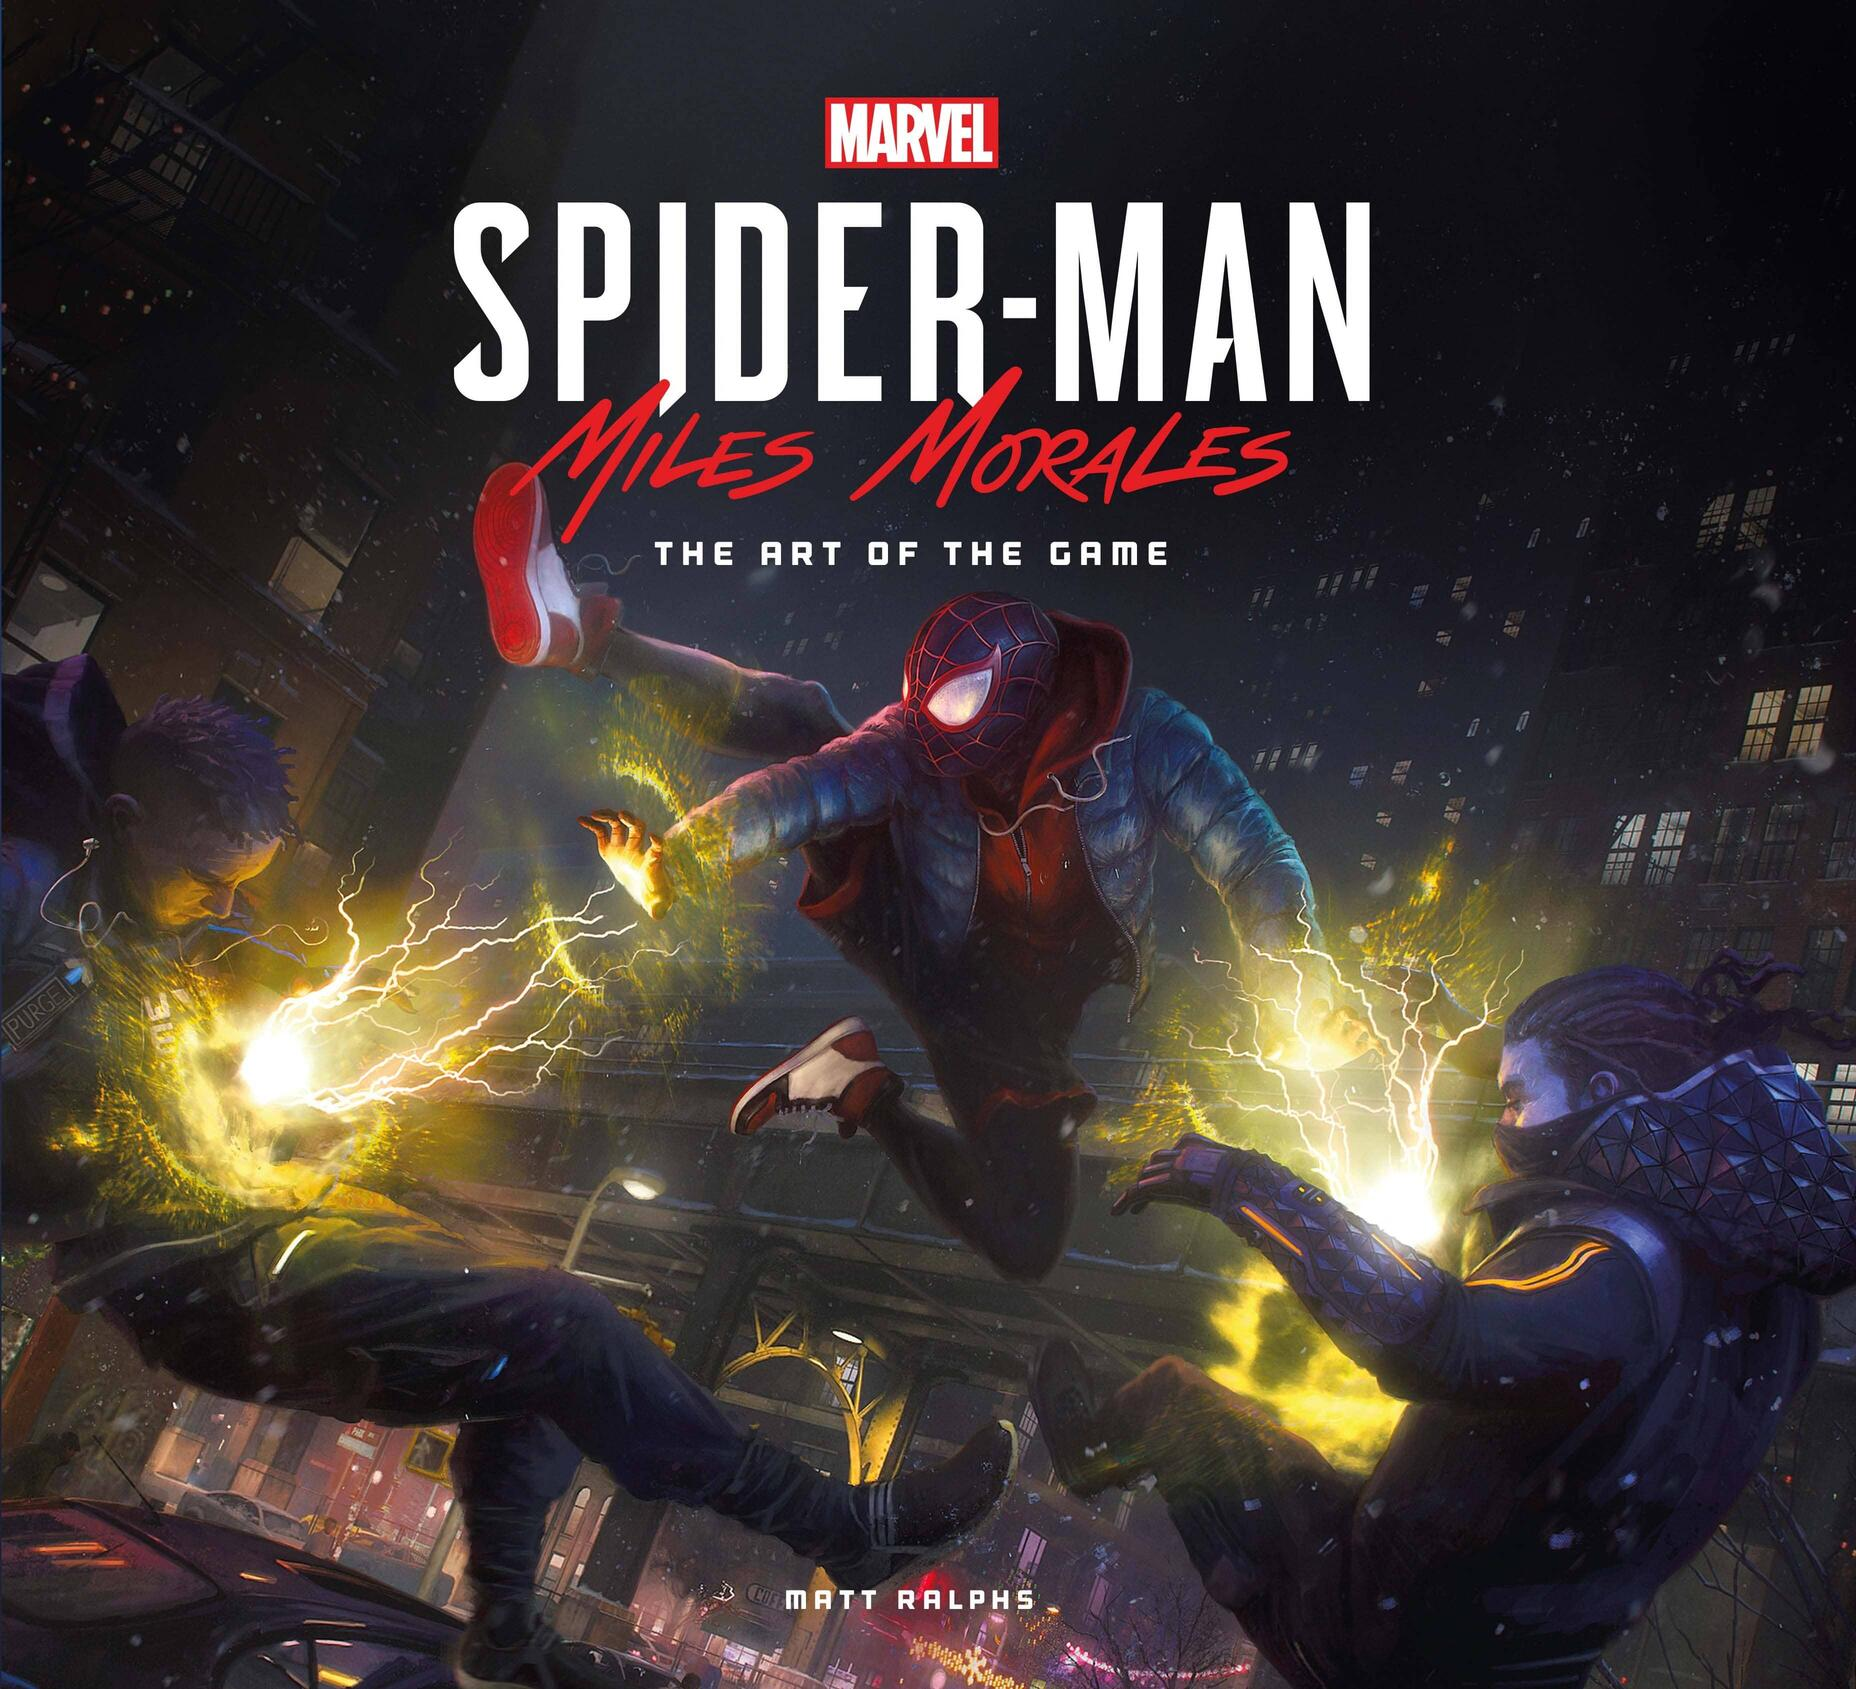 Marvel's Spider-Man: Miles Morales – The Art of the Game